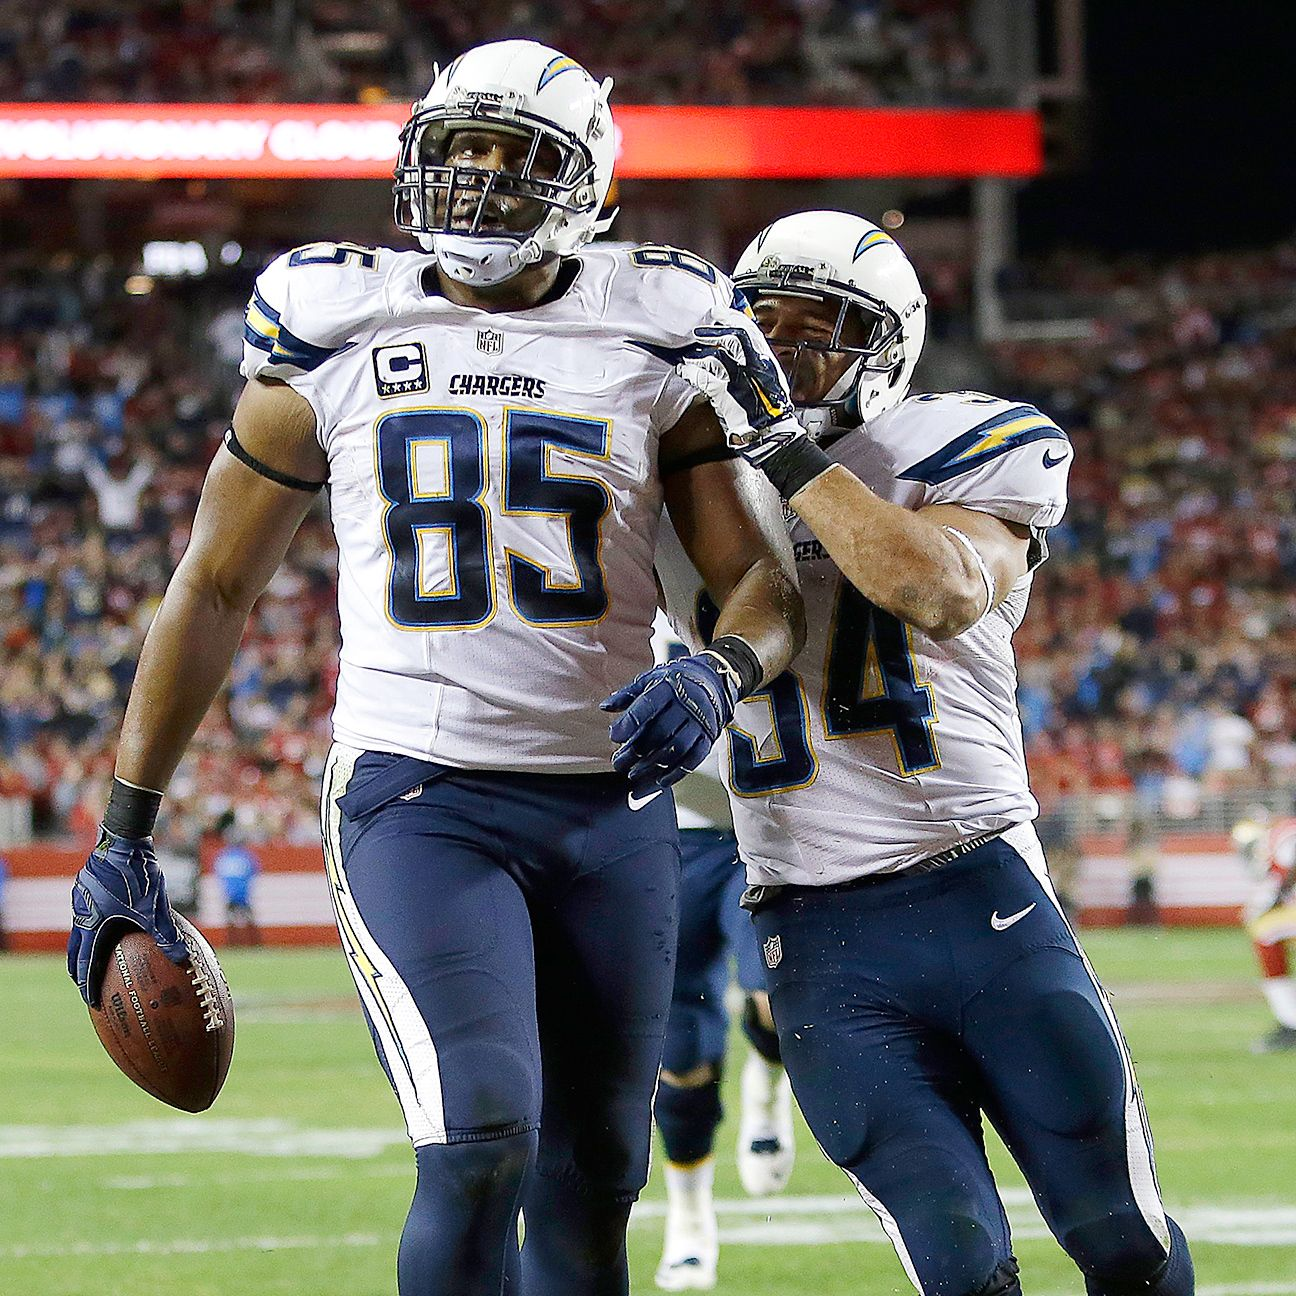 San Diego Chargers Football Score: Antonio Gates Of San Diego Chargers: No Idea Why PED Found